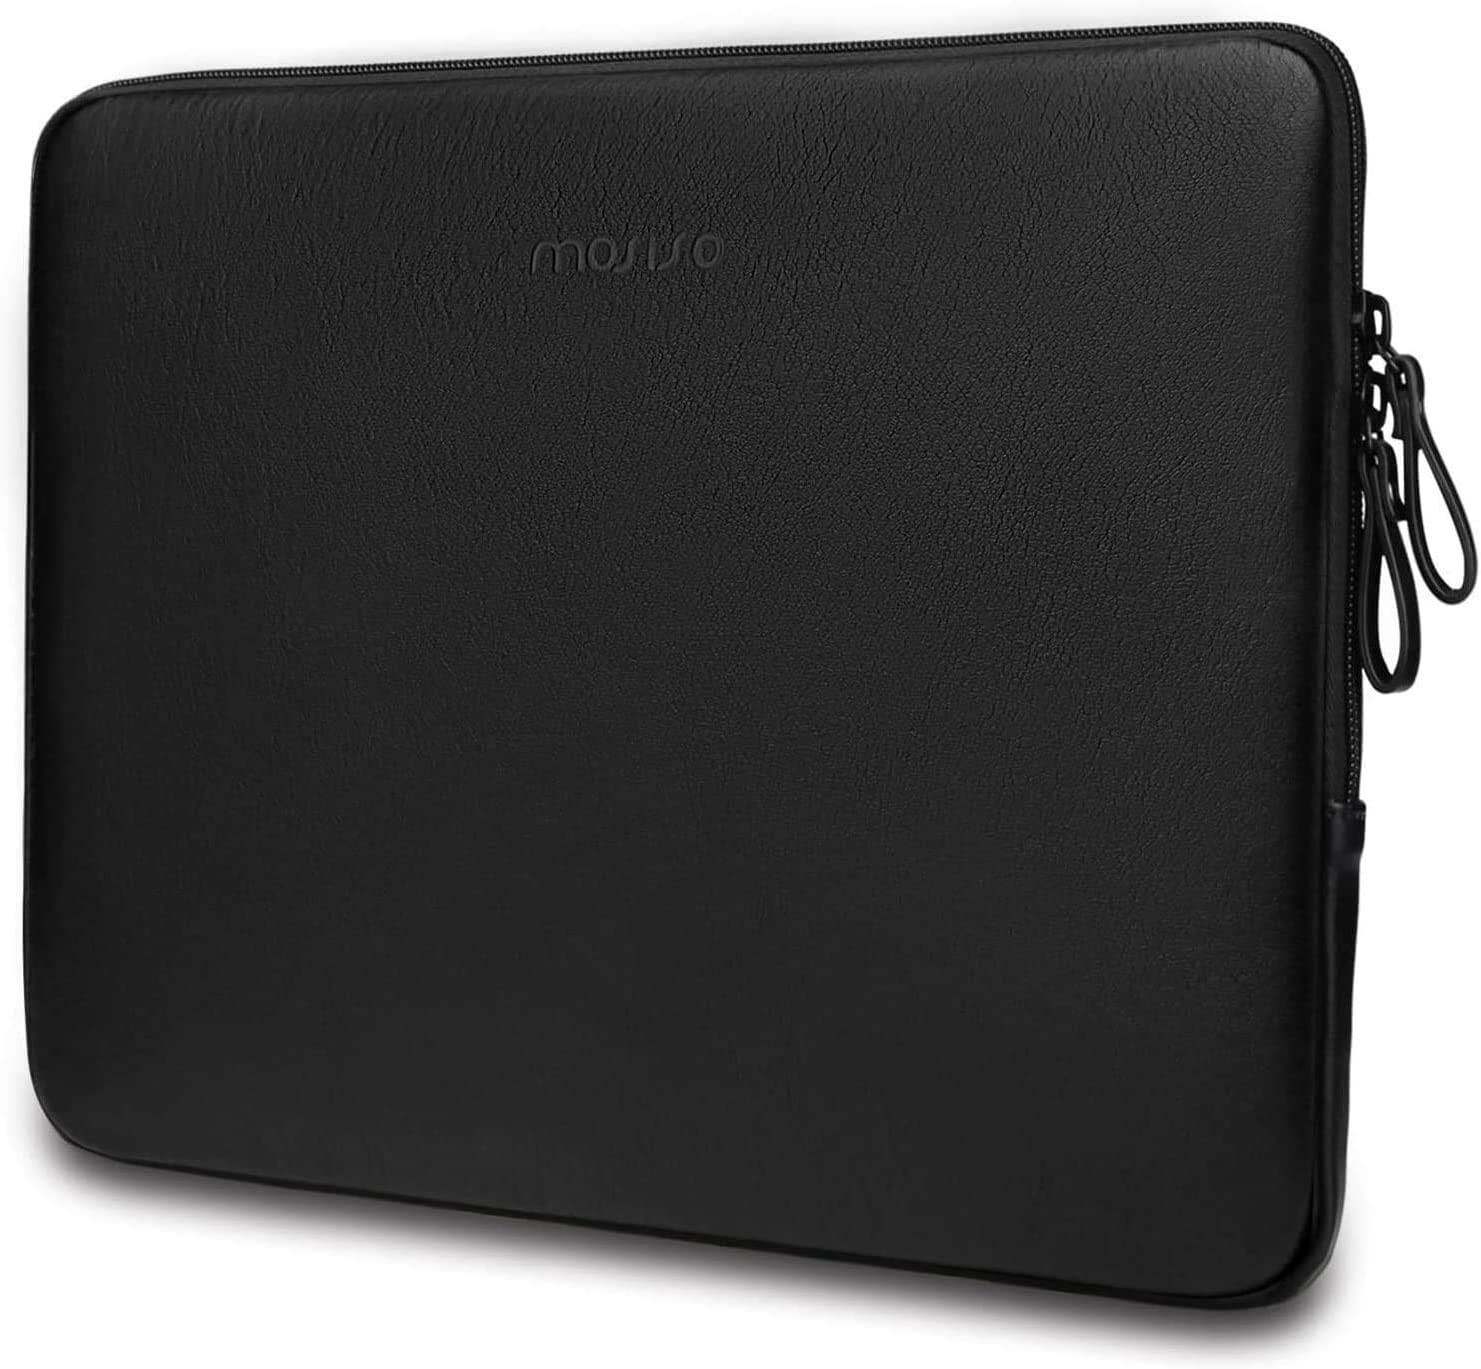 MOSISO Laptop Sleeve Compatible with 13-13.3 Inch MacBook Air/MacBook Pro Retina/2019 2018 Surface Laptop 3/2/Surface Book 2, PU Leather Super Padded Bag Waterproof Protective Case, Black